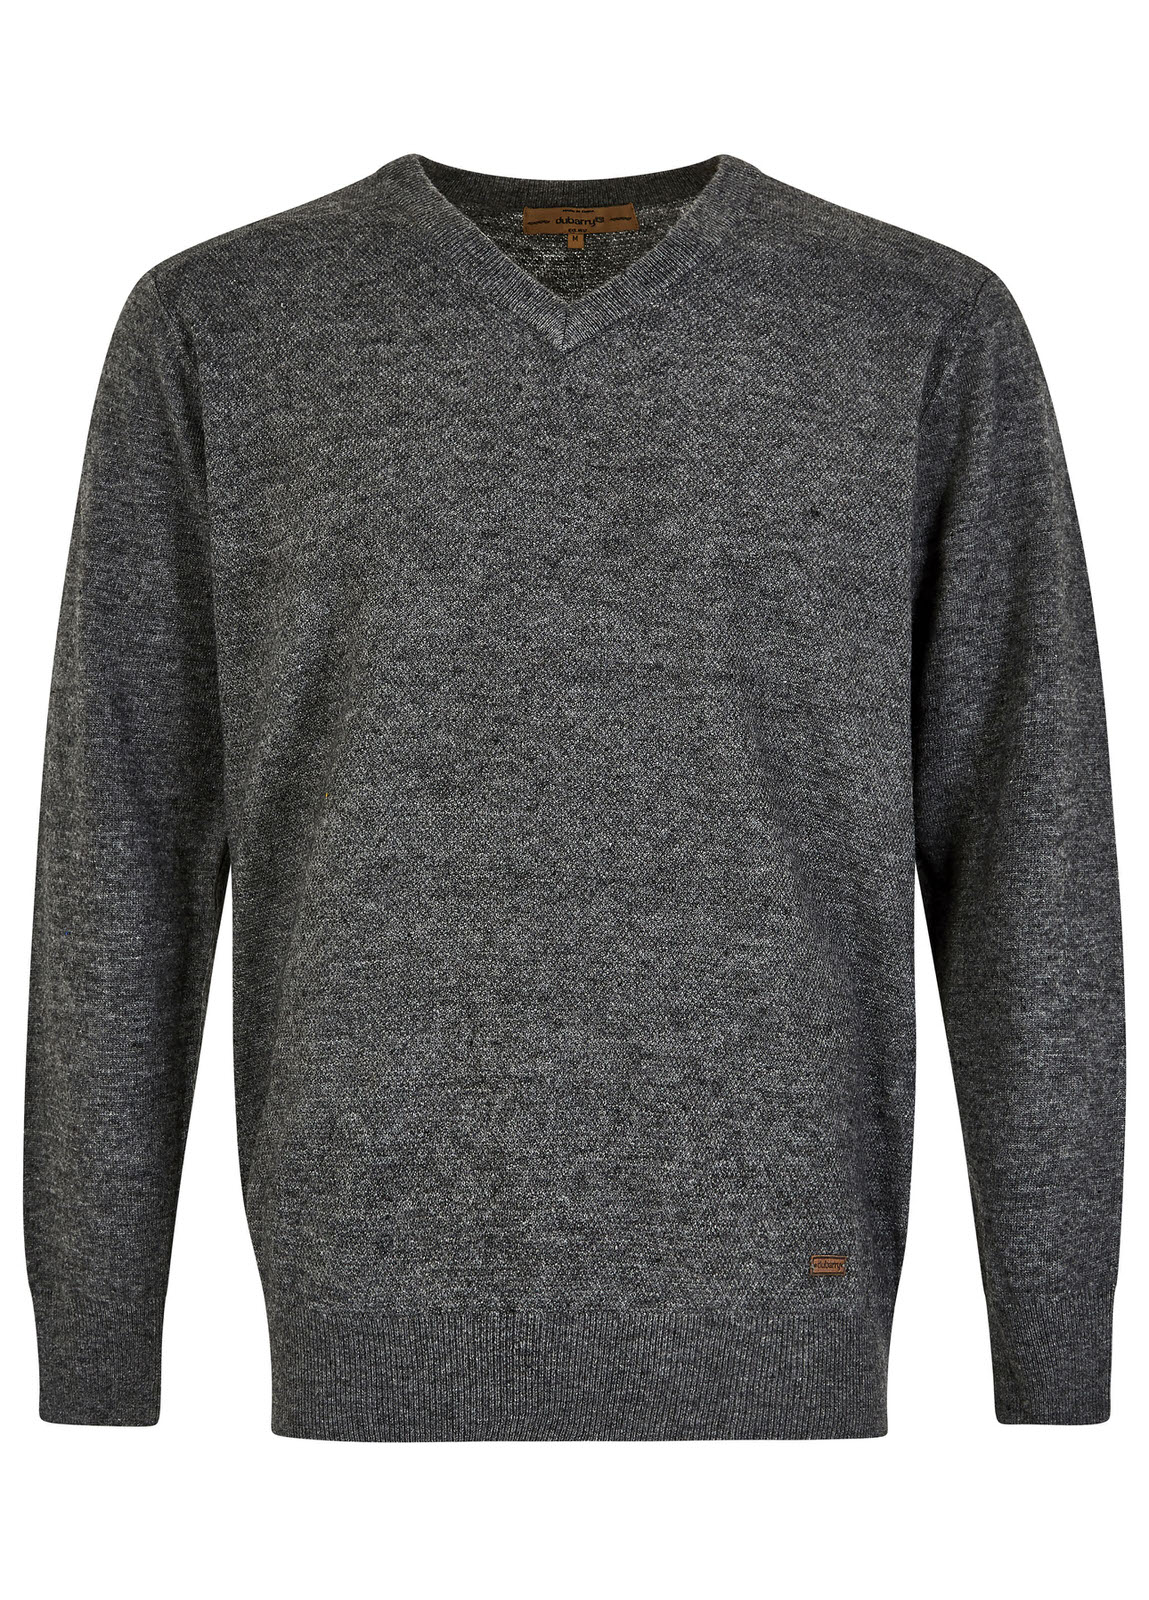 Lynch_Sweater_Light_Grey_Image_1